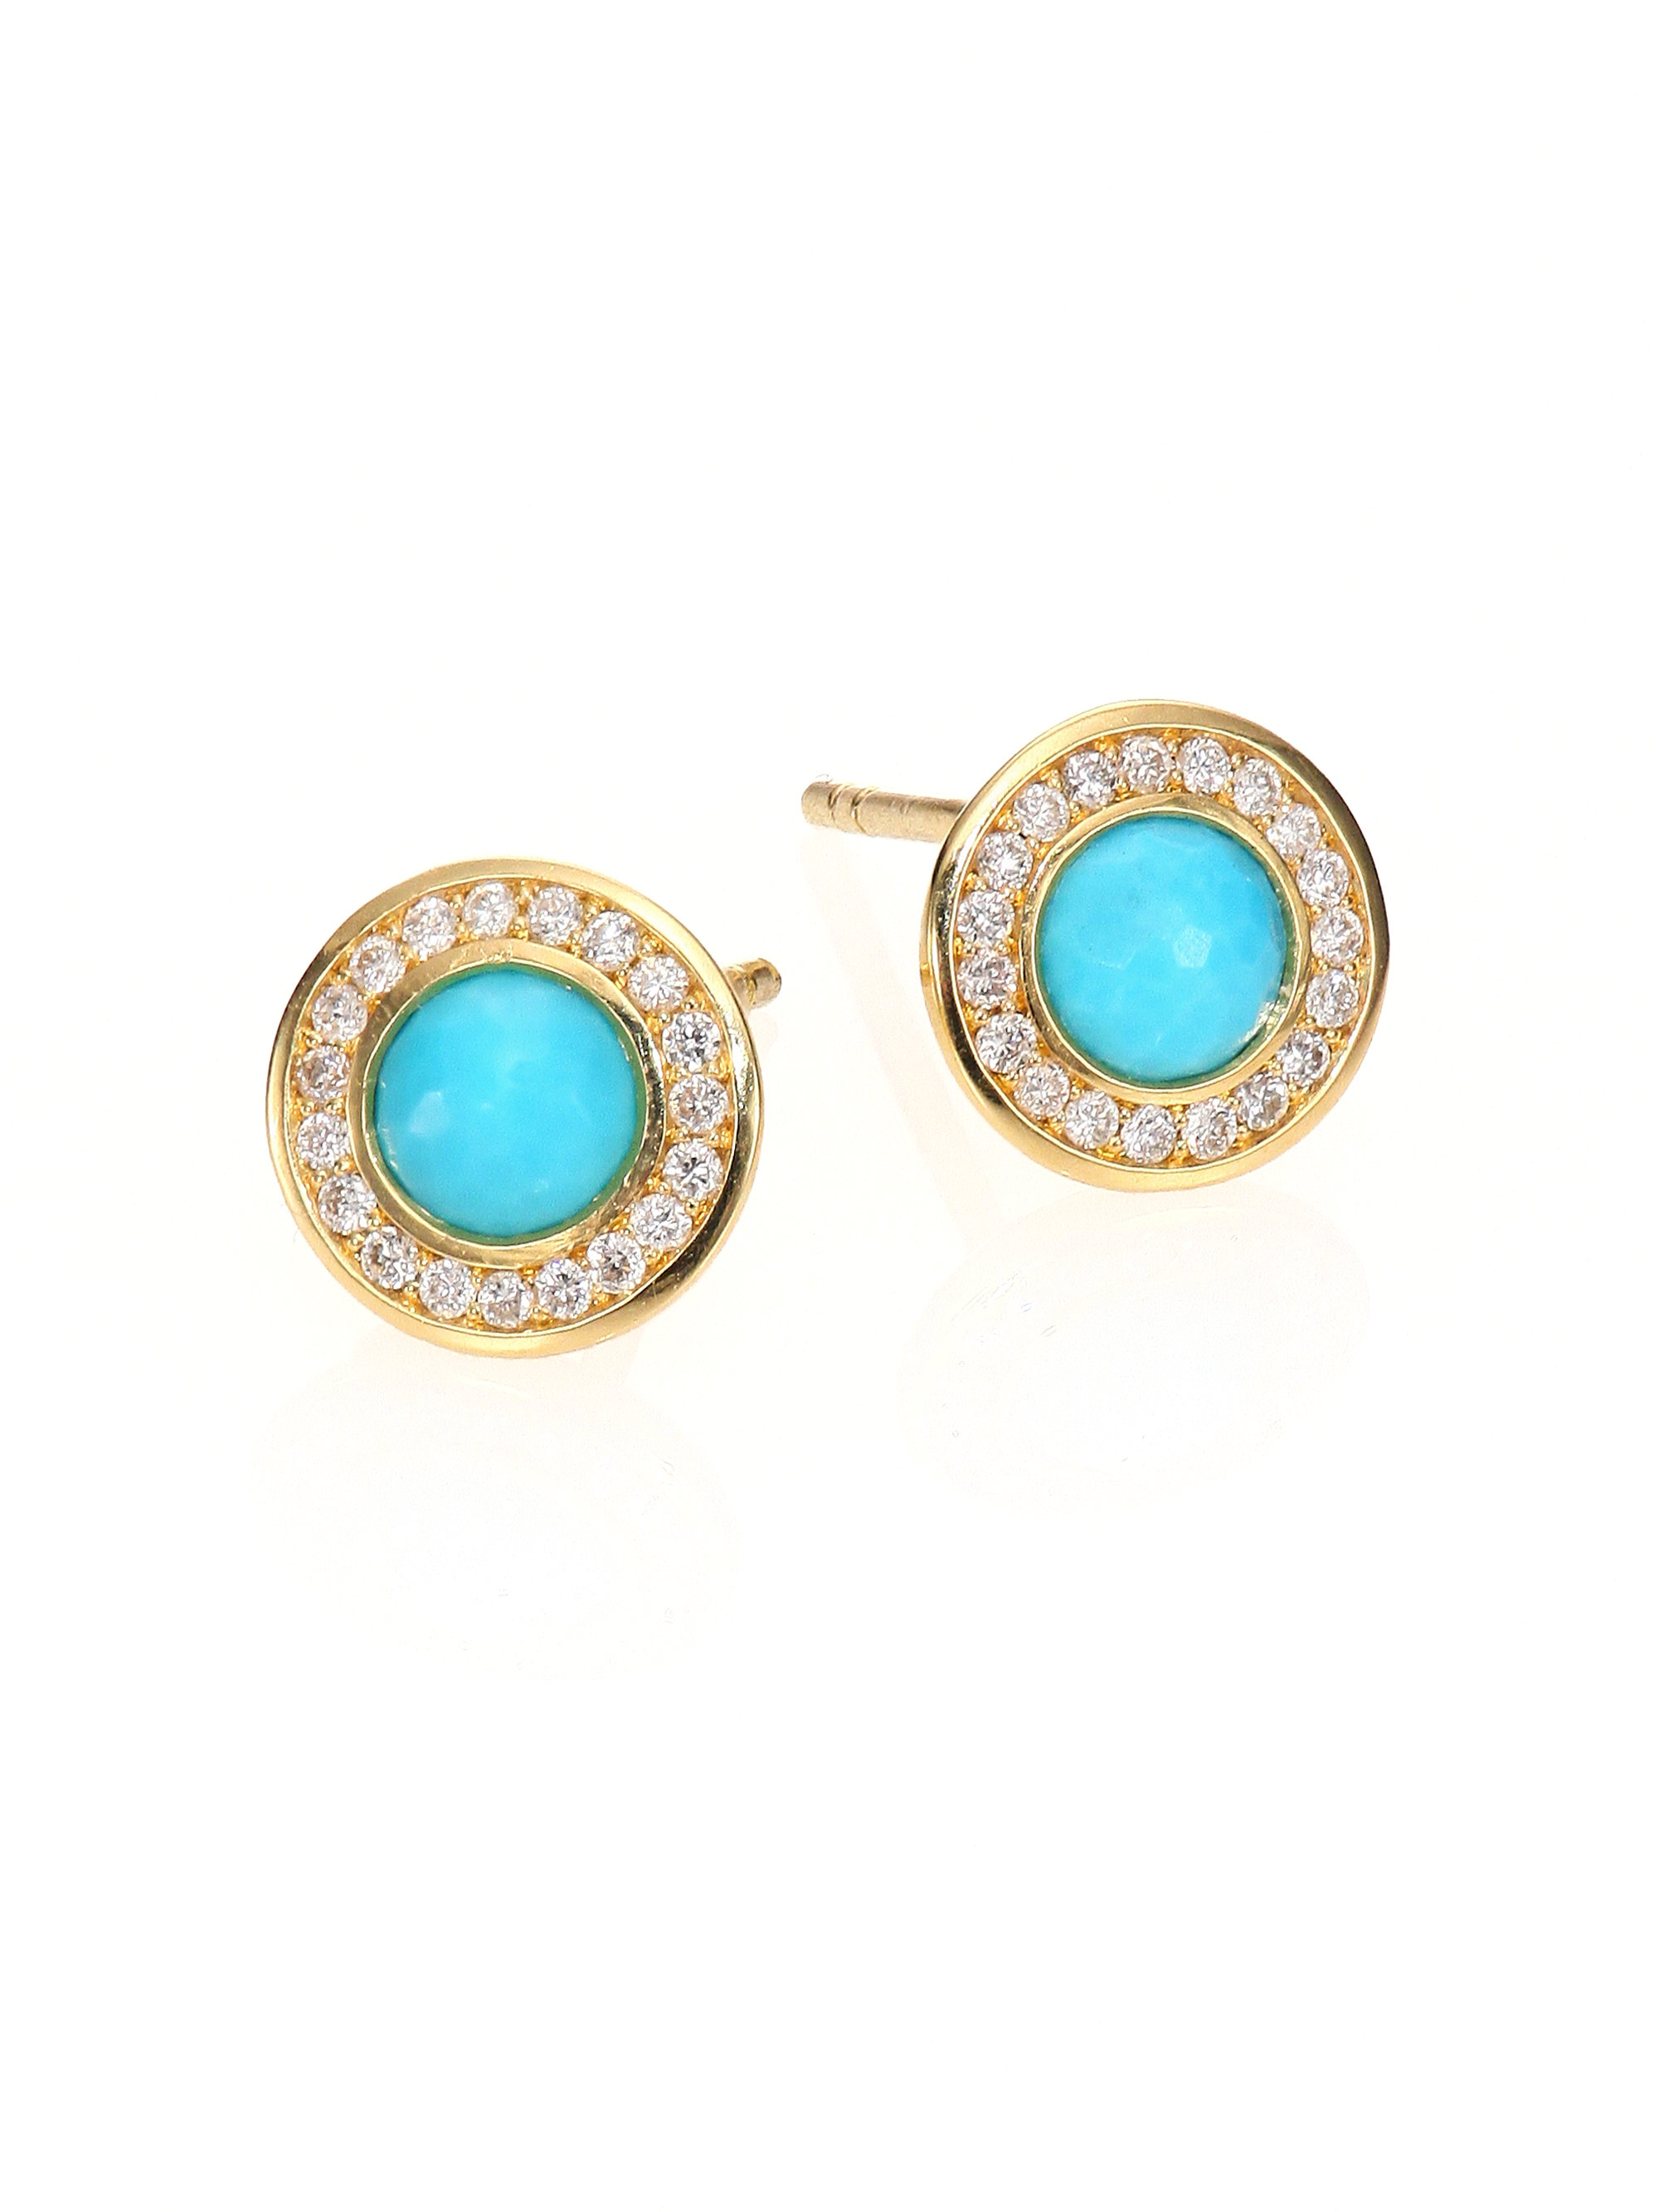 pin etsy latest stud earrings excited share the addition my shop to turquoise